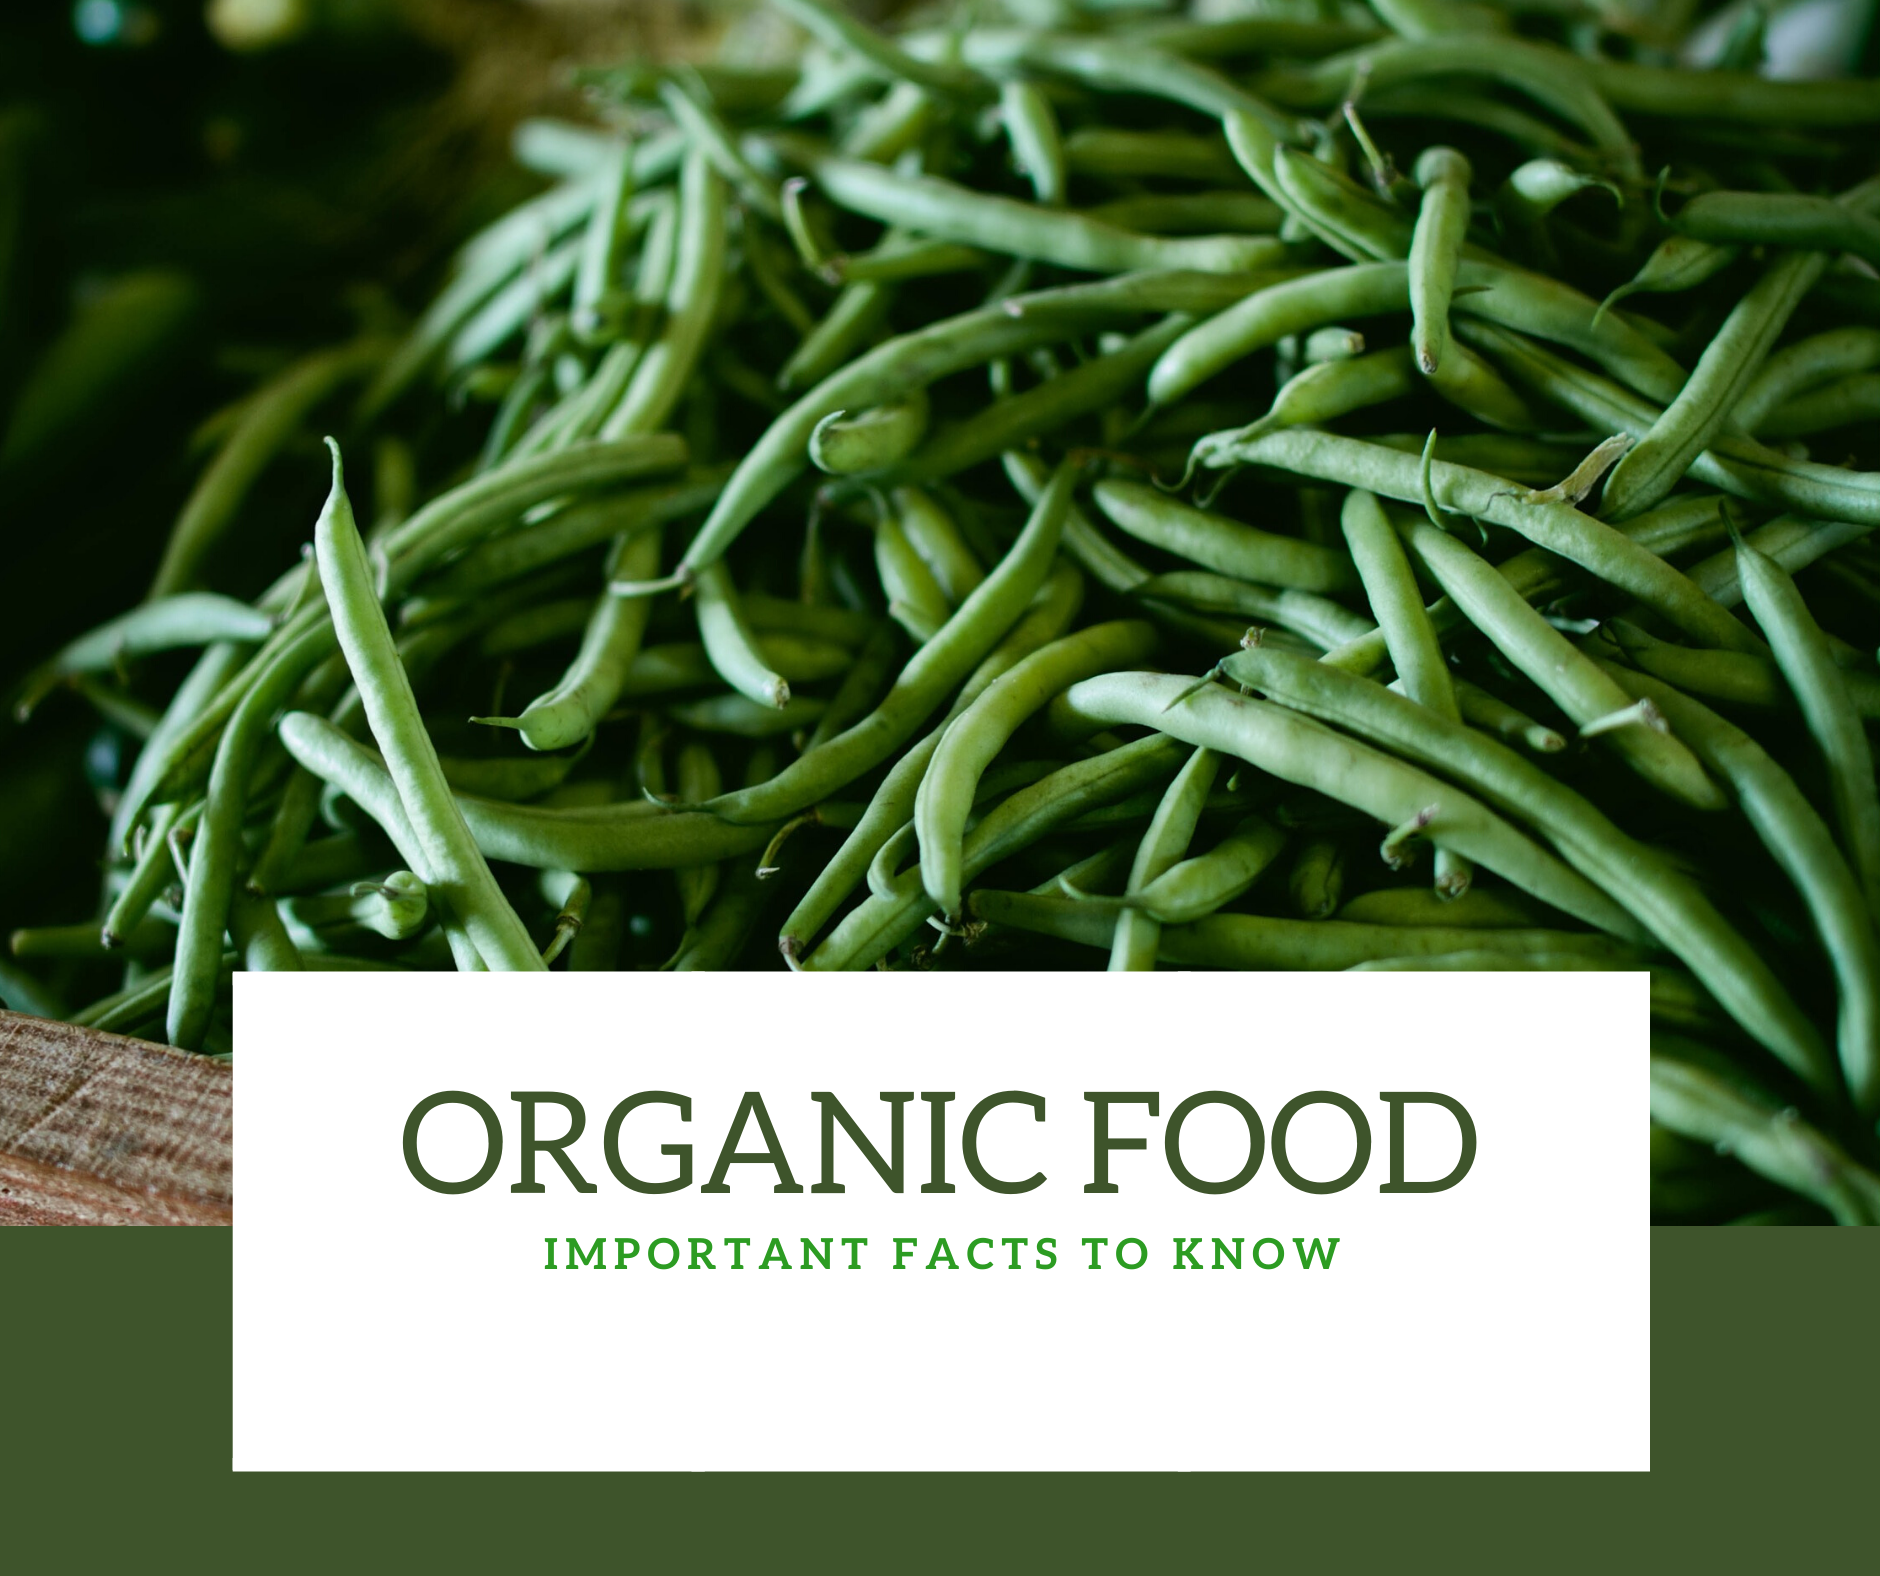 Organic foods – Important facts